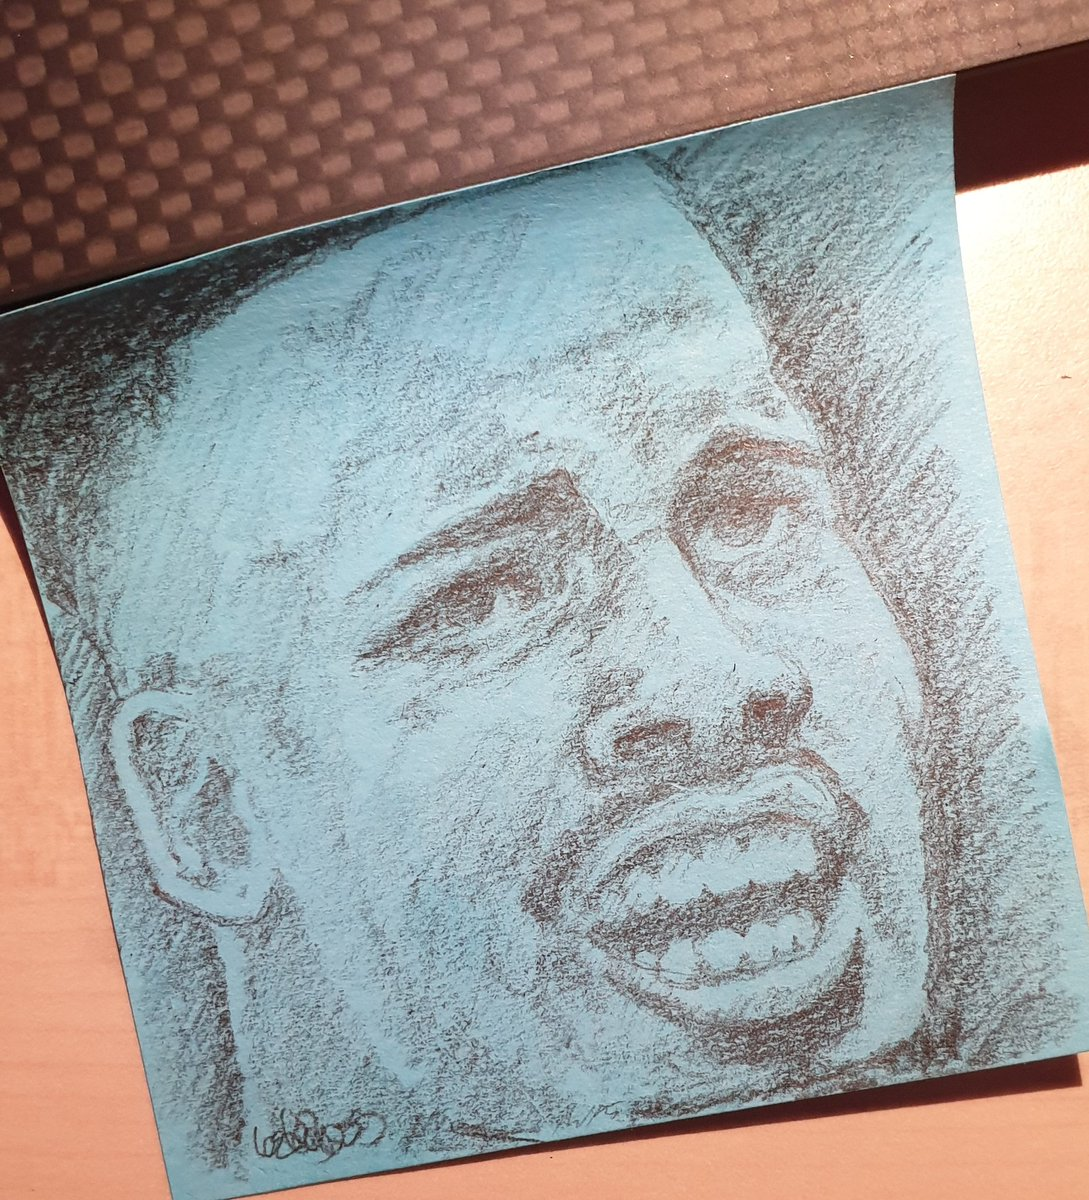 Post it note Gabby sketch. Things to do when a Q&A session is on. #eventslife #mancity #sketch #art #pencil